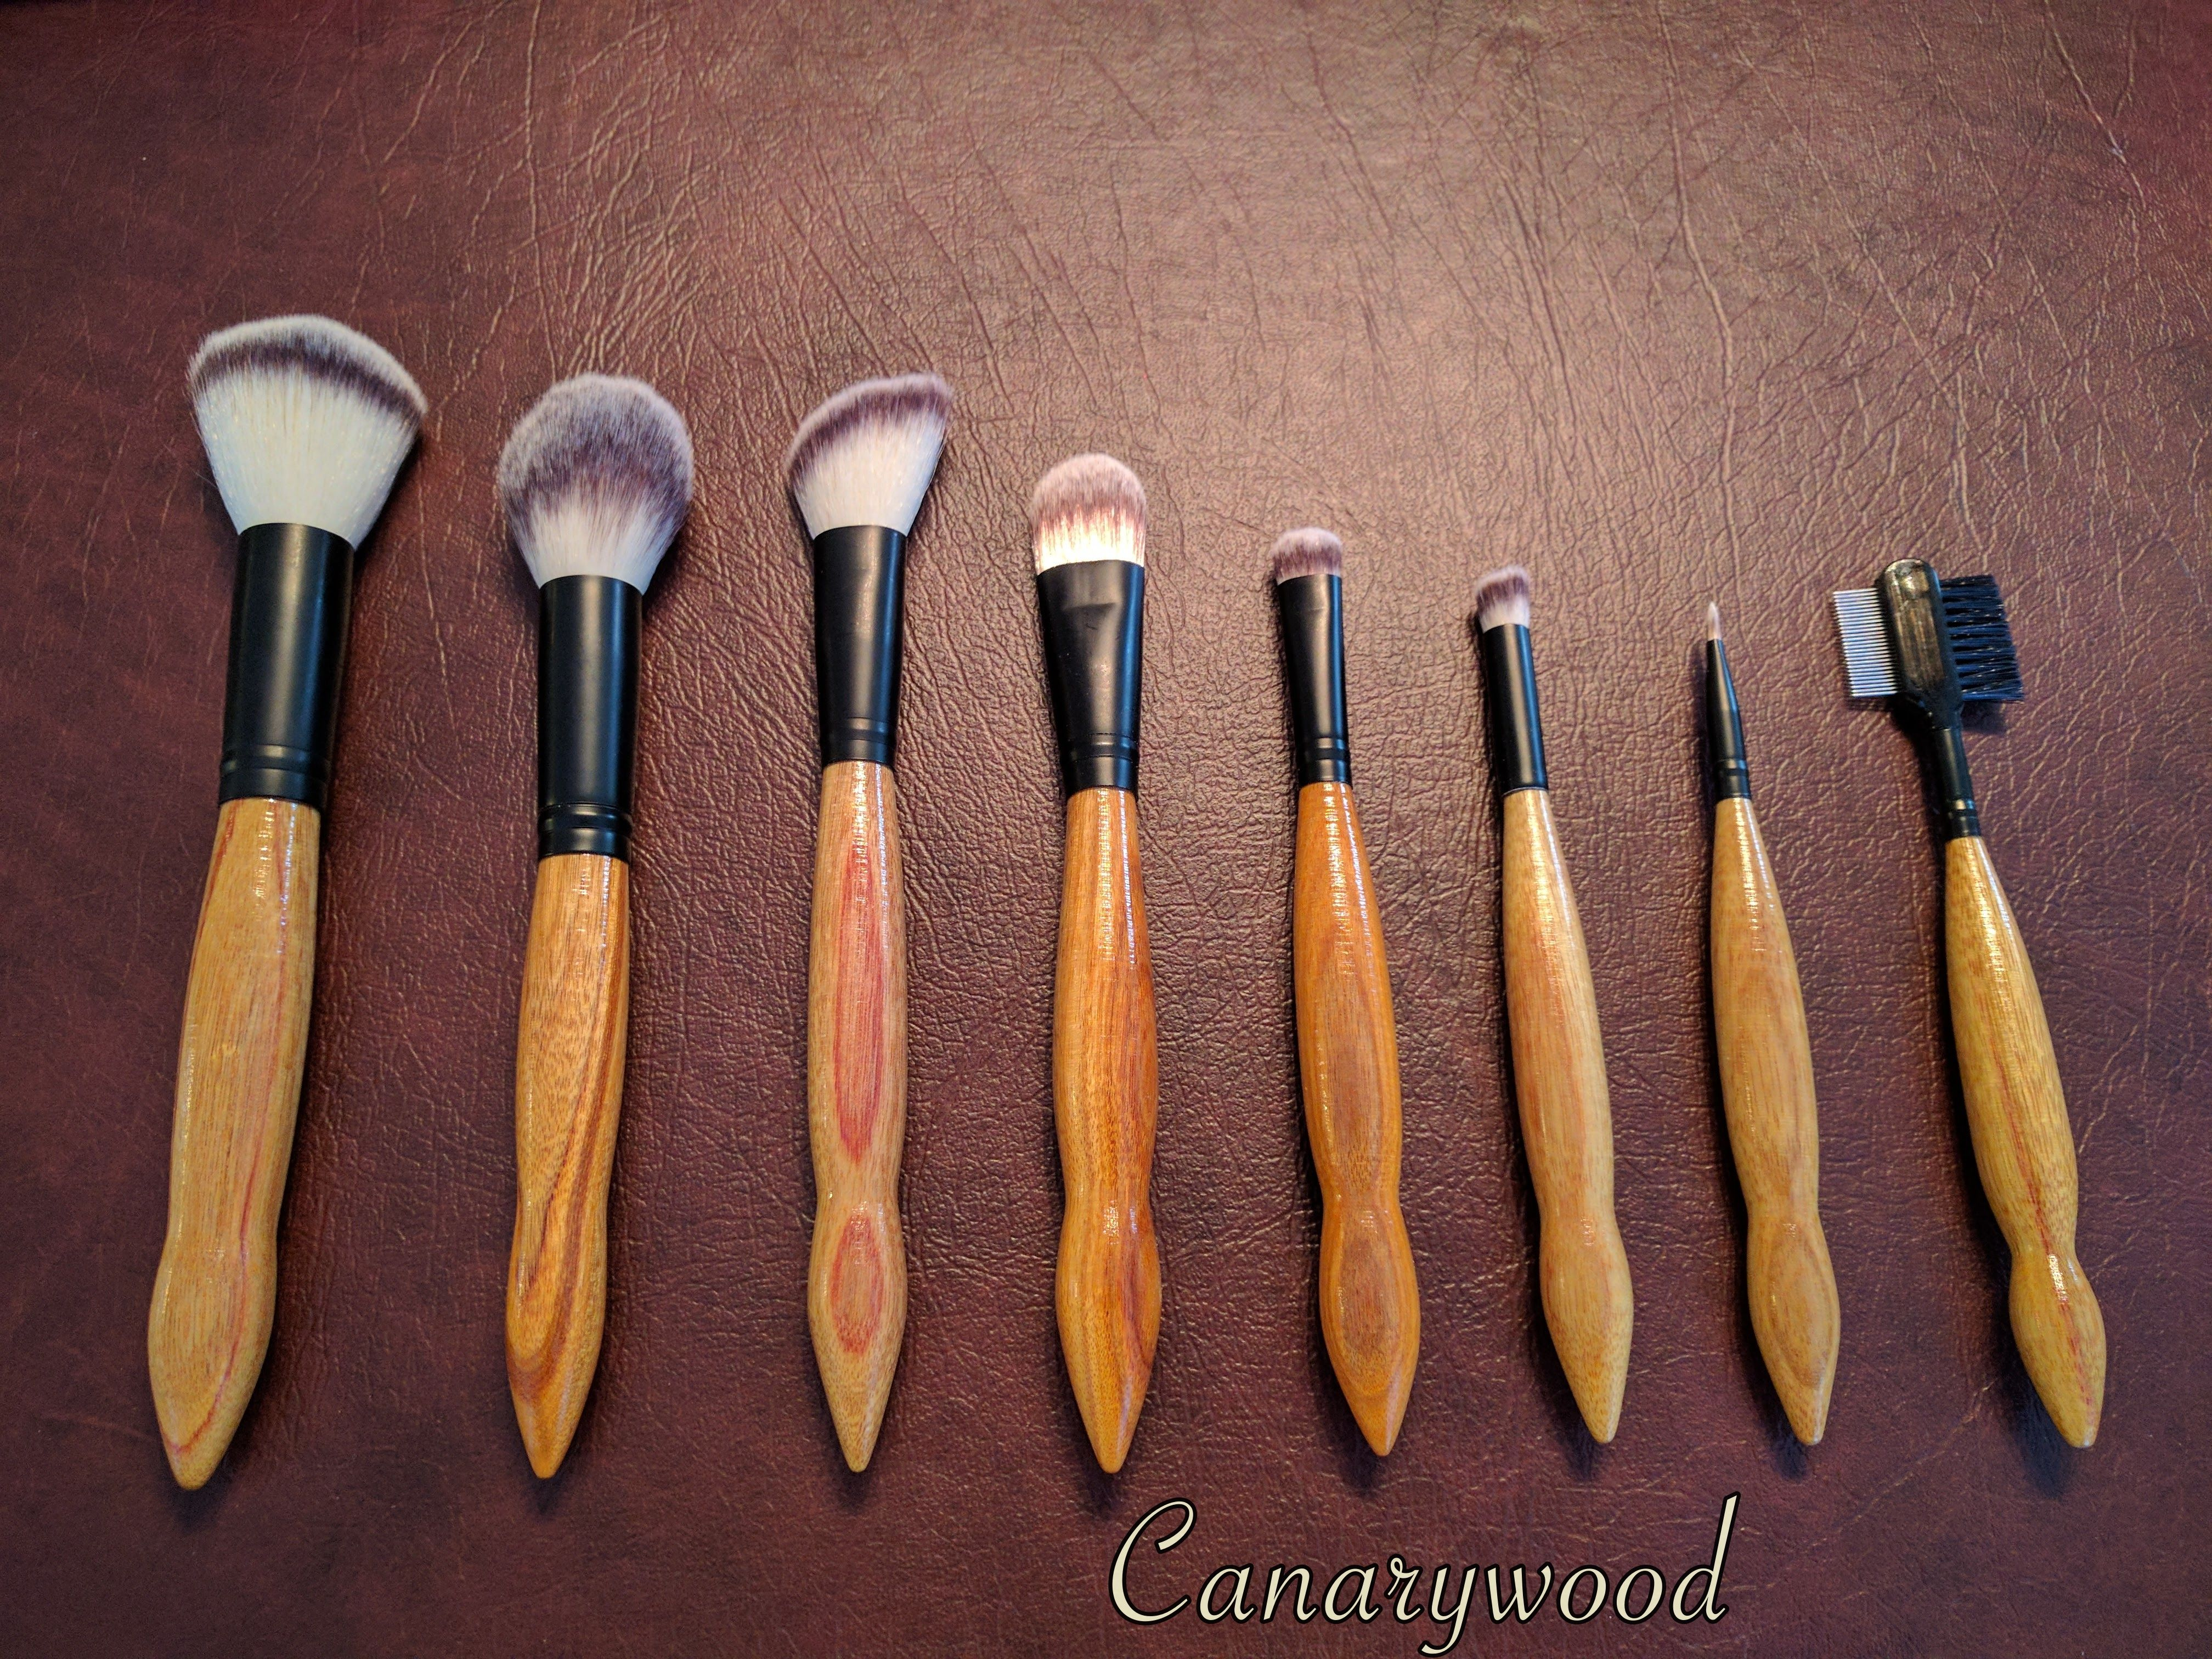 Canary Wood makeup brushes. Custom orders available on our